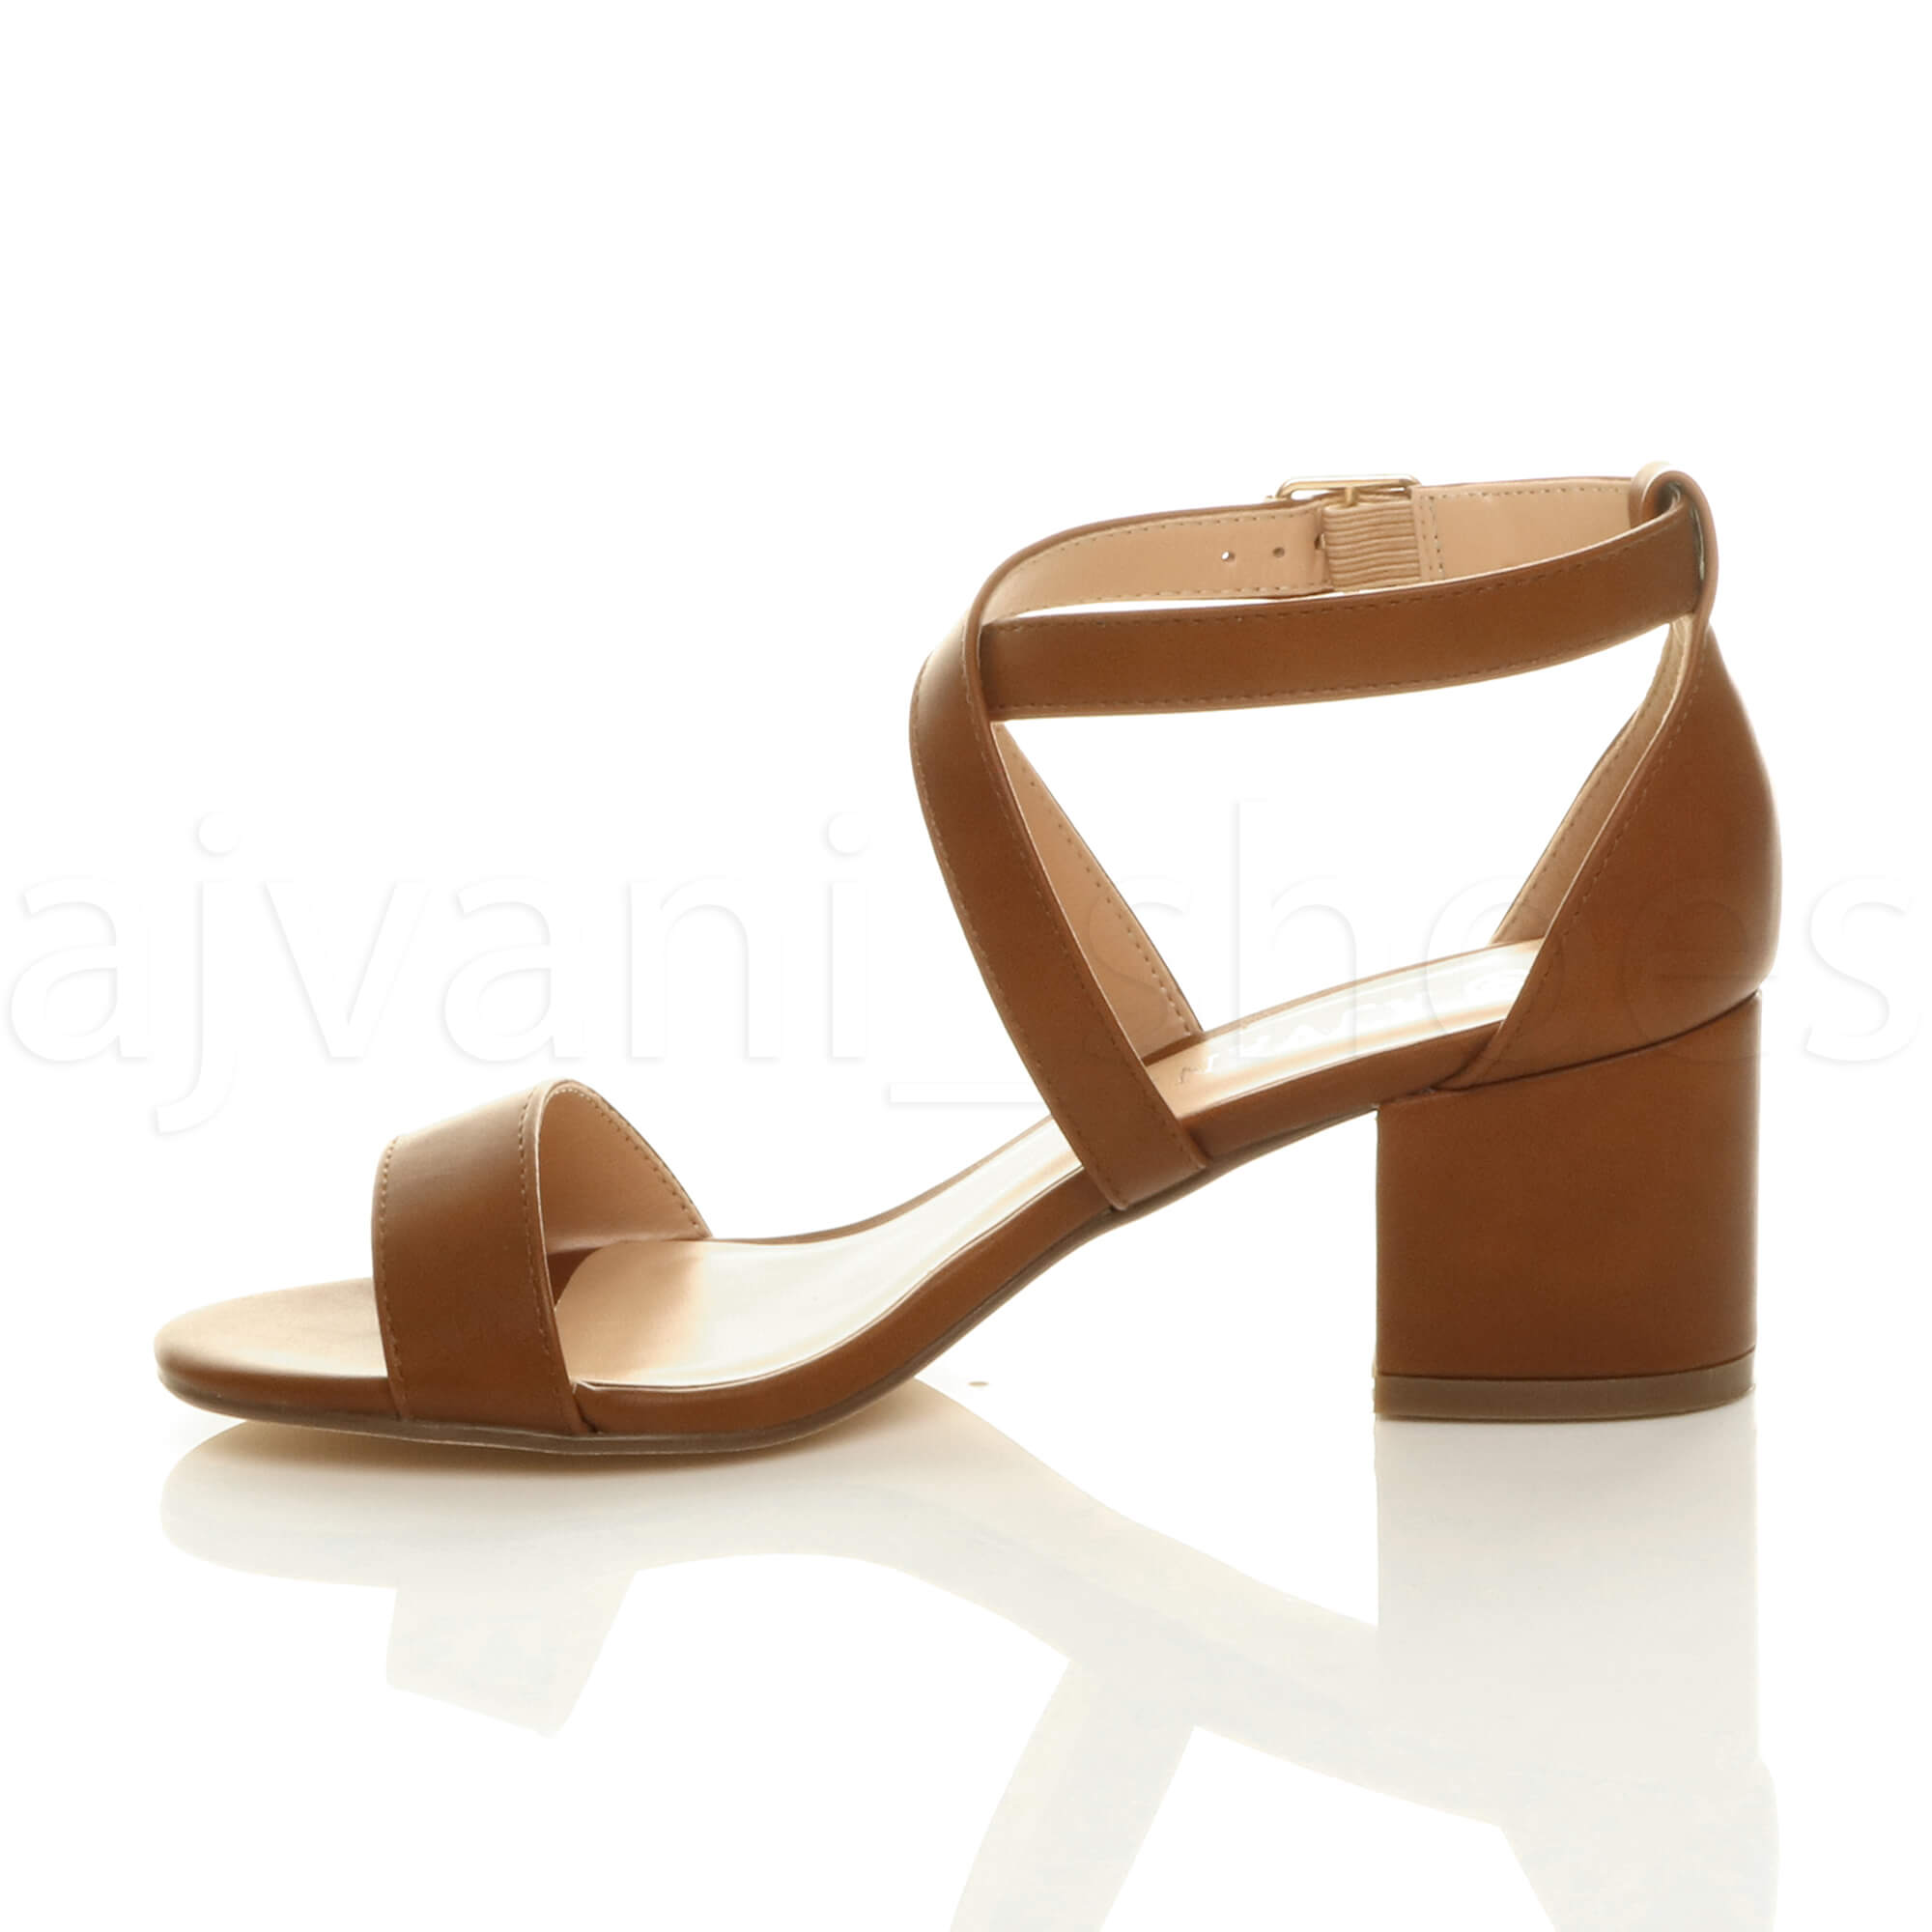 WOMENS-LADIES-MID-LOW-BLOCK-HEEL-CROSS-STRAPS-PARTY-STRAPPY-SANDALS-SHOES-SIZE thumbnail 91